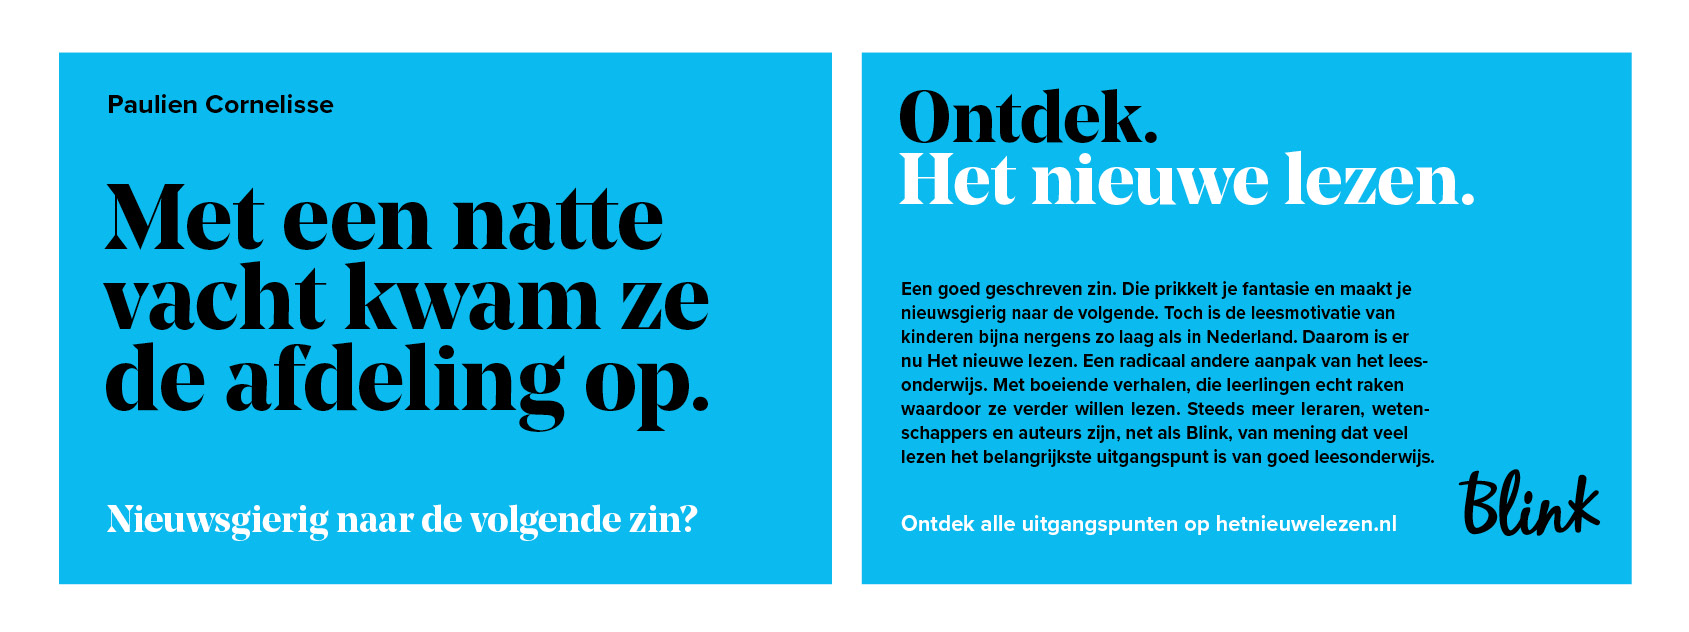 369181 dagblad%20advertenties%20liggend%20rgb 8fb937 original 1603964801